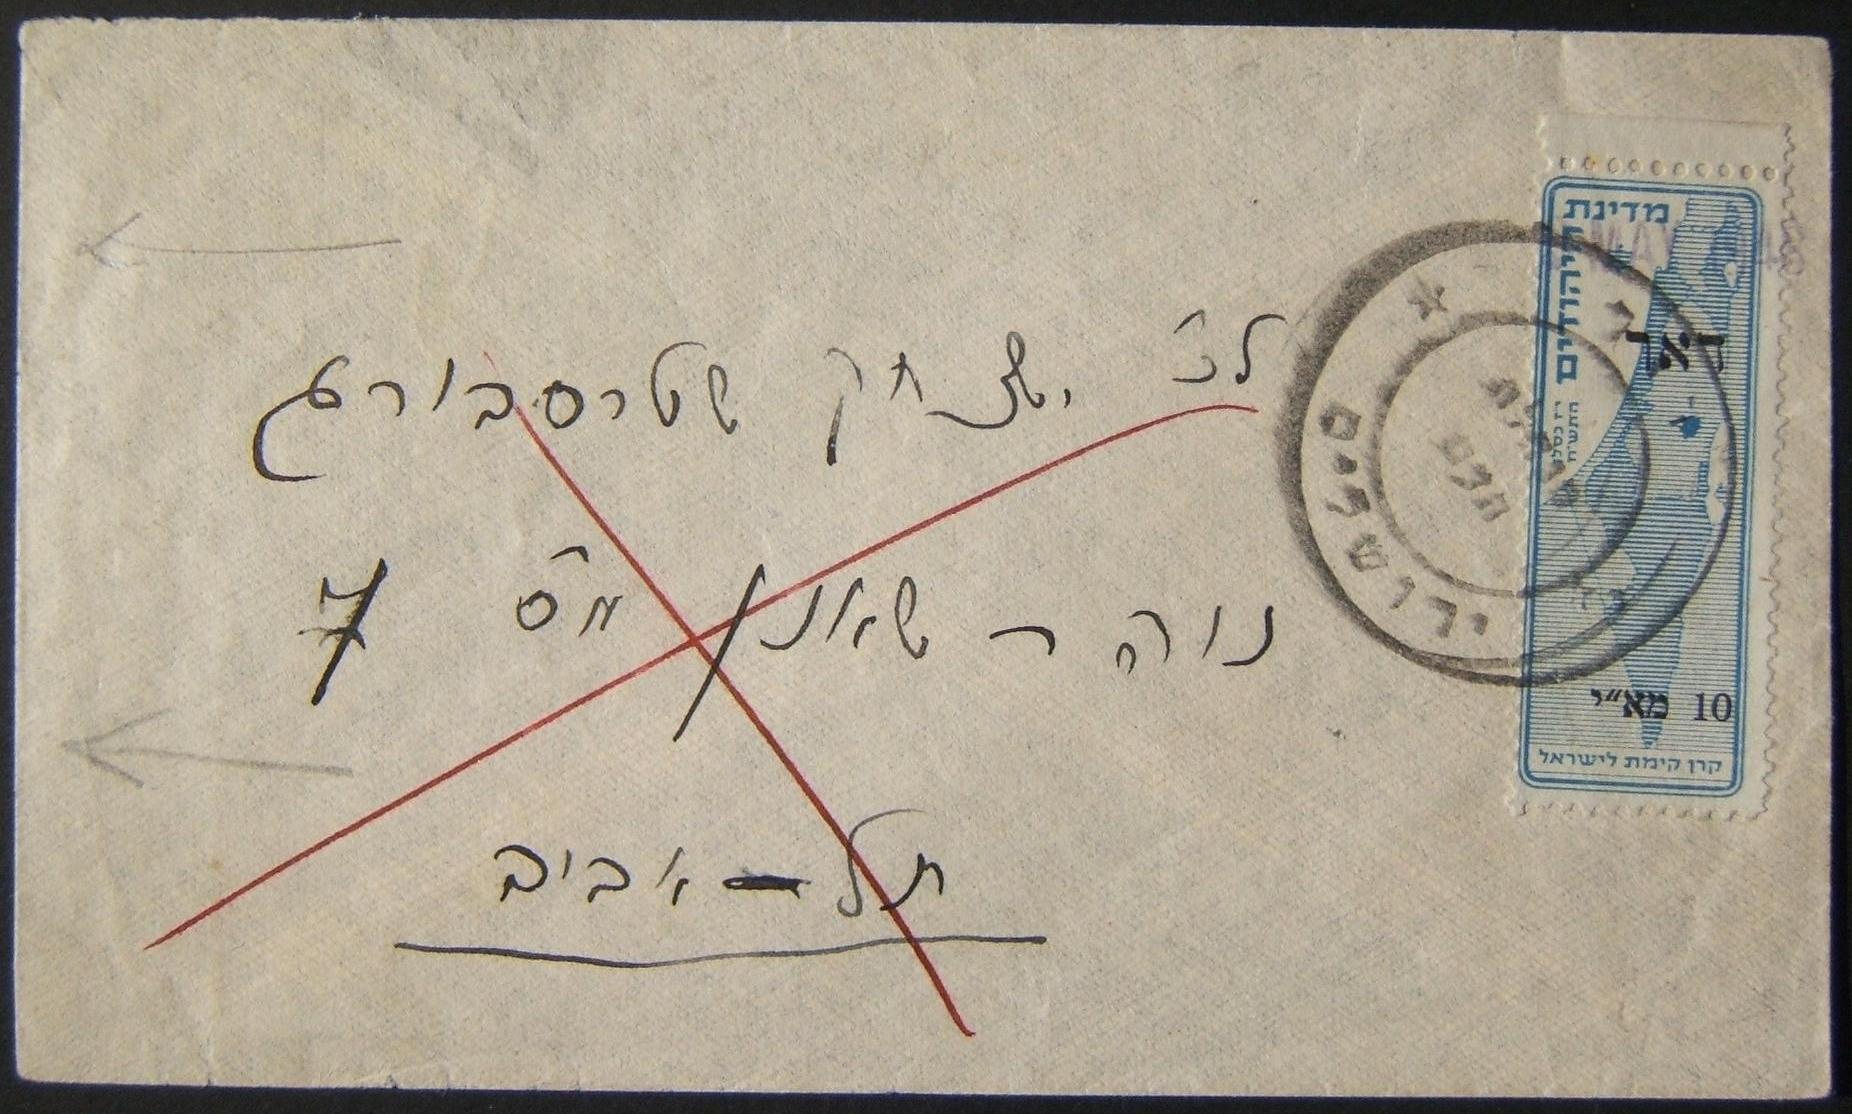 9-05-1948 1st convoy mail from JERUSALEM to TEL AVIV; address unknown & returned